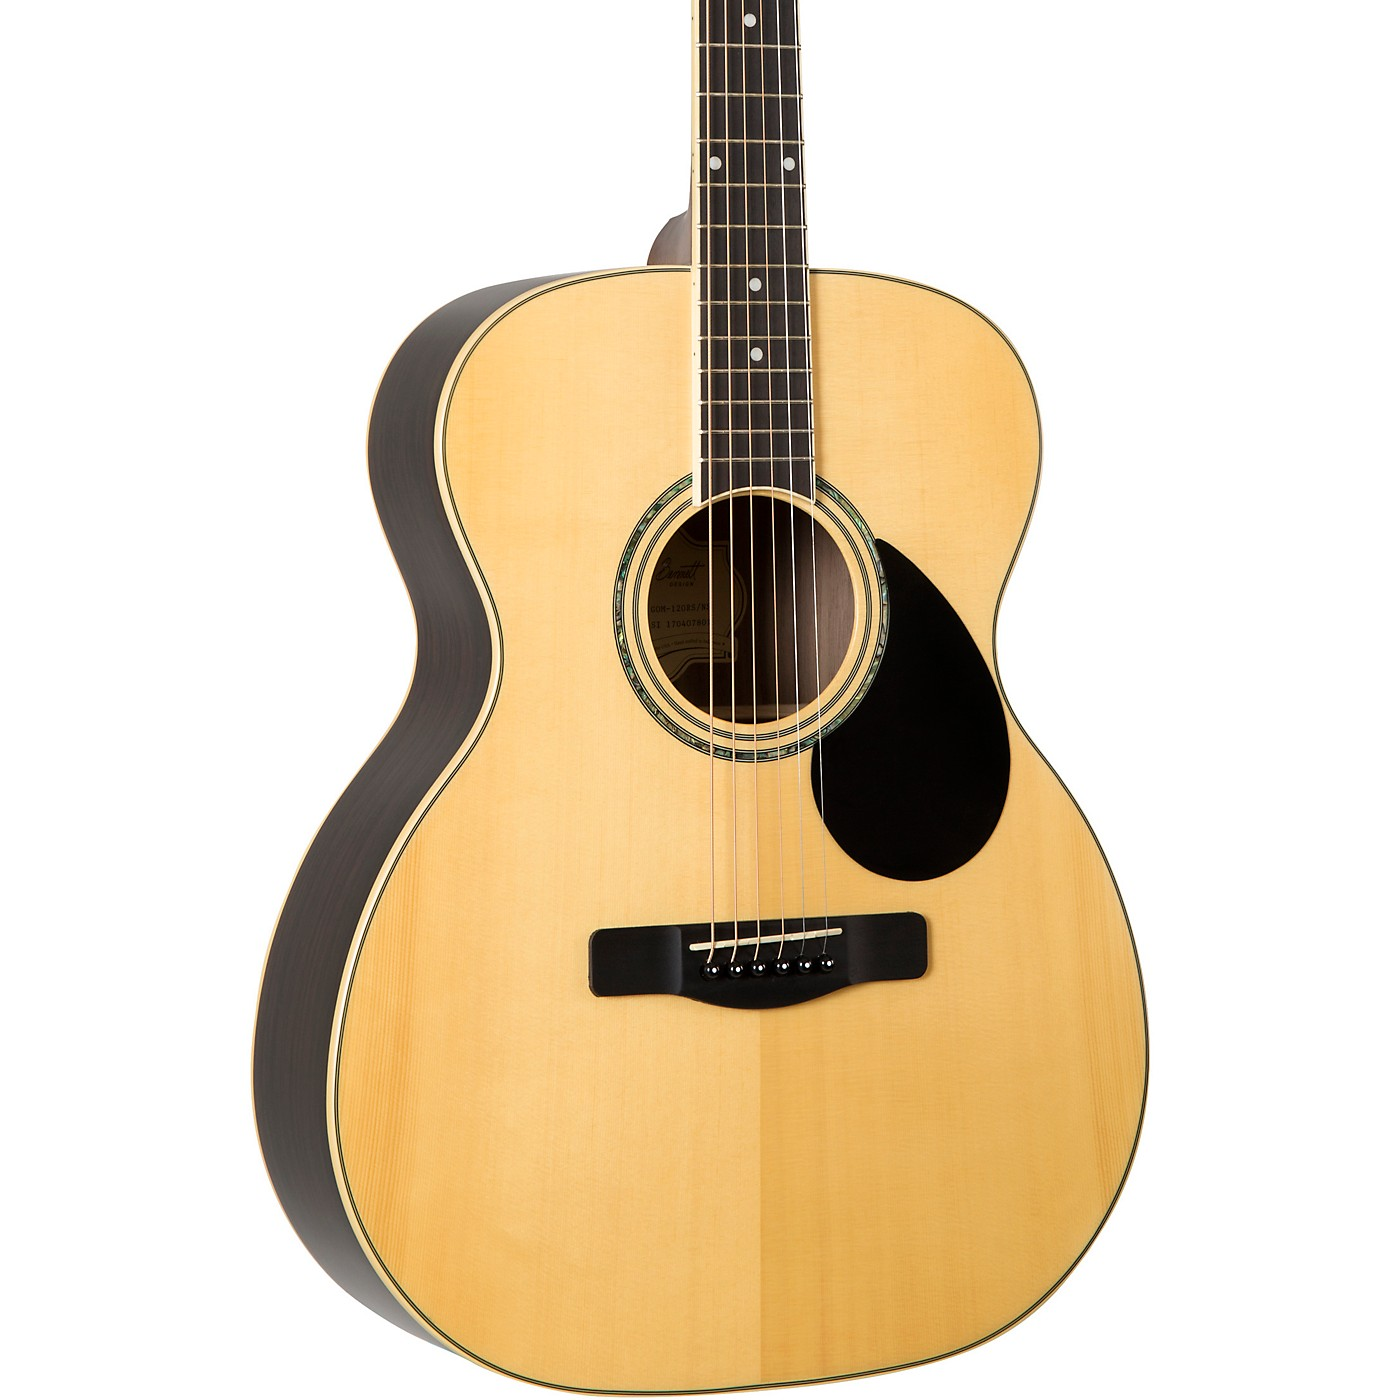 Greg Bennett Design by Samick GOM-120RS Orchestra Solid Spruce Top Acoustic Guitar thumbnail